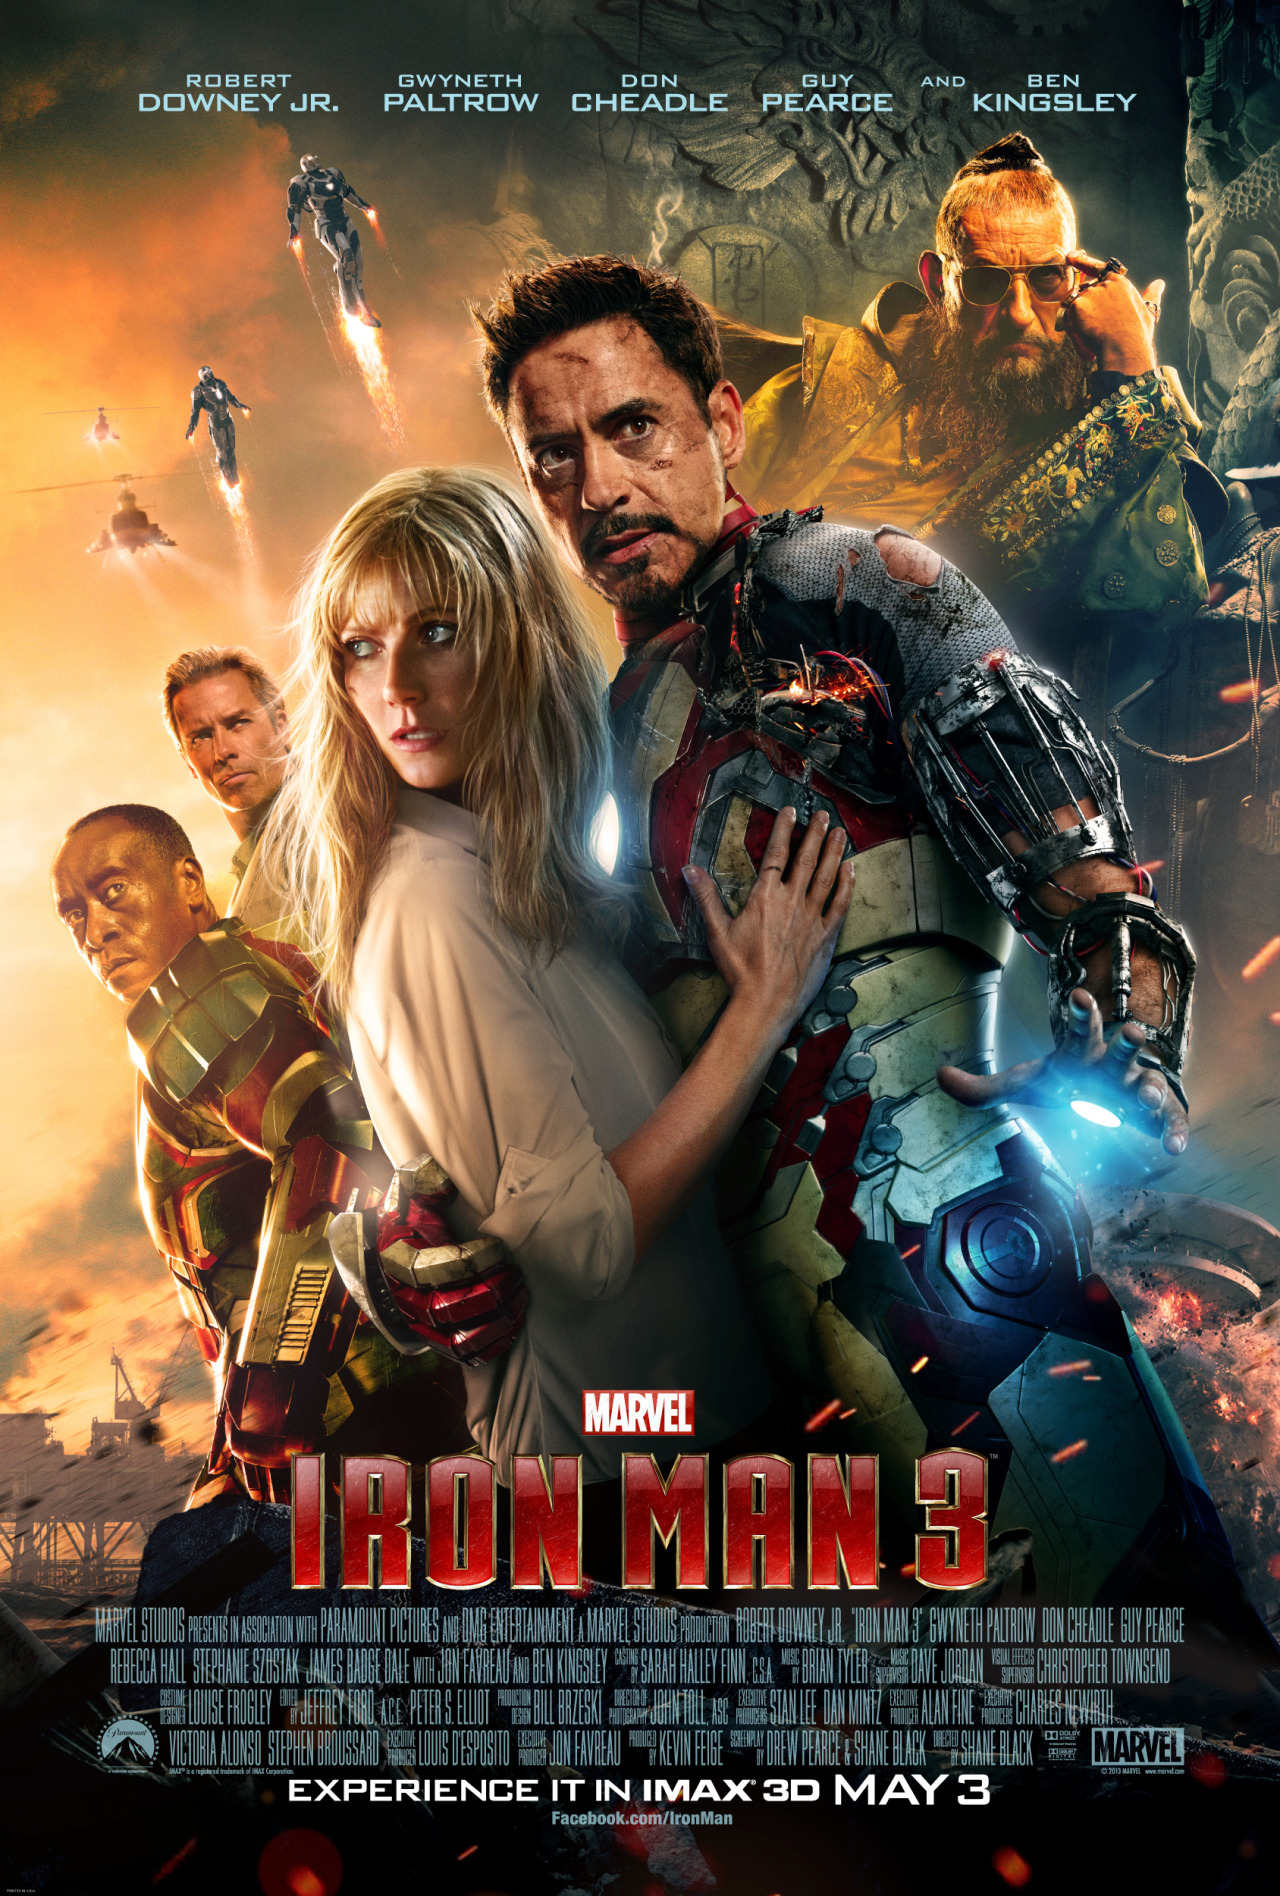 "Iron Man 3 Spoiler Free Review My eldest daughter and I made what has become our regular Marvel Cinematic Universe pilgrimage on Sunday this time to Iron Man 3. She has followed all of Phase One since Iron Man in 2008 and has loved them all, though now she's 10 and growing up I fear she likes Thor for Chris Hemsworth rather than any Mjolnir smashing though she enjoys that too :-) A day has passed to let it settle in my head before I made any fresh from the cinema knee-jerk reactions, and I'll have to agree with my not so little any more girl and say ""That was the best Marvel movie yet!"" I'm still trying to figure out how they've done it but damn it they have and Joss Whedon must be banging his head off his keyboard now to out do this for Avengers 2. The trailers and TV spots seemed to have revealed too much but they haven't and some of the action sequences you have only glimpsed so far will have you cheering, and I haven't seen a cinema do that since Danny Glover shot Joss Ackland in Lethal Weapon 2 and say ""it's just been revoked."" The Air Force One scene will be an IMAX gem, unfortunately we're not advanced enough here in the emerald isle to have IMAX. And that Lethal Weapon connection brings me to Shane Black. I've always liked his stuff, with Downey Jr making his return to favour in the director's Kiss Kiss Bang Bang (2005) and that same quick fire sensibility and snappy dialogue have made it into Iron man 3, and are a perfect fit for Tony Stark. I was also surprised to see his action direction was both original and mind-blowingly good, if you thought the Avengers final battle was as good as it could get this tops it, but even some mid-movie action fare will have you wanting to book another ticket to try to take in everything you just watched. The dialogue is brilliant and the delivery by all involved is up to the task, with thrills and laugh out loud moments aplenty. After suffering under the weight of world building for the Avengers in Iron Man 2 this movie manages to shake off those issues while still having all that has gone before inform it and play an integral part. The events of Avengers and working just a dash of the Extremis comic book storyline into the film, as well as taking Tony back to basics, putting him 'back in the cave' as Kevin Feige put it, revitalises the usually awkward third movie in the series and makes it the best one yet. There is also a good amount of detective work involved in IM3 certainly more than the dark knight detective has had to do in his trilogy which is a touch ironic. The sidekick issue I worried a bit about with Tony meeting a kid tech whiz was handled perfectly thanks to Stark's dry wit, and unashamedly being a bit of a shit even to children. This is a Tony Stark movie pure and simple and that focus is what we all wanted to see, Robert Downey Jr in full flight Genius, Billionaire, Playboy, Philanthropist, mode, though with a little less playboy now with Pepper on his arm. There's nothing more to say about RDJ, he owns this role even more than Connery did Bond, and we can only hope he wants to do more, another two maybe with Avengers 2 as well would keep me happy. He showcases Stark at his best and worst in IM3 and also puts Jason Bourne and MacGyver to shame at times as well. It's a tour de force performance that completely screws anyone trying to take on the role should he wish to pass the torch. Gwyneth Paltrow shines as Pepper as always and gets more to do in this one as well beyond damsel in distress. Also featuring more is Don Cheadle's Rhodey paring up with Tony for more action buddy fun. I've been a fan of his since Boogie Nights and I really hope he at least graduates to the Avengers if not his own movie. Jon Favreau returns also as Happy Hogan and while it was never a big role but we'd miss him if he hadn't come back. Guy Pearce is back on form gladly as Aldrich Killian which is more than the cameo he said he was doing, and a hell of a lot better than 'Lockout' which I barely managed to watch the whole way through the other week. I have two special mentions one for Paul Bettany's JARVIS who also gets more to do than usual and for just being a voice is as a defining part of the cinema version of Iron Man as the armour itself. He even gets to kick ass and a few other awesome moments himself this time around. My other special mention is for Sir Ben Kingsley. Even if you stick him in a crap movie he always delivers, you put him in this and he's awesome. I can't say more about him without heading to spoiler territory but he was effortlessly fantastic. We know the Marvel movies are moving in phases and IM3 sort of completes phase one of Iron Man, and leaves us desperately wanting RDJ to show up at comic Con this year and tell us about IM4. Most reviews have been positive as has this fan's and there have been a few detractors as well. Some say it craps on the comics, one said it didn't have enough Iron Man in it, and I can only assume these folks haven't actually watched the movies or read the comics. I was an Iron Man fan from way way back in the day, and everything that appears in the books simply can't make it to the big screen, the two are incompatible mediums in some respects, Alan Moore has made this point for years. What Marvel so effectively do is take the best of the comics and let it inform their movies, and most importantly stay true to the characters at the heart of their cinematic universe. There's probably more Iron Man armour action in this than the previous entries in the series, there's more action full stop, but what this film does best is showcase Tony Stark… …and Tony Stark is …Iron Man."